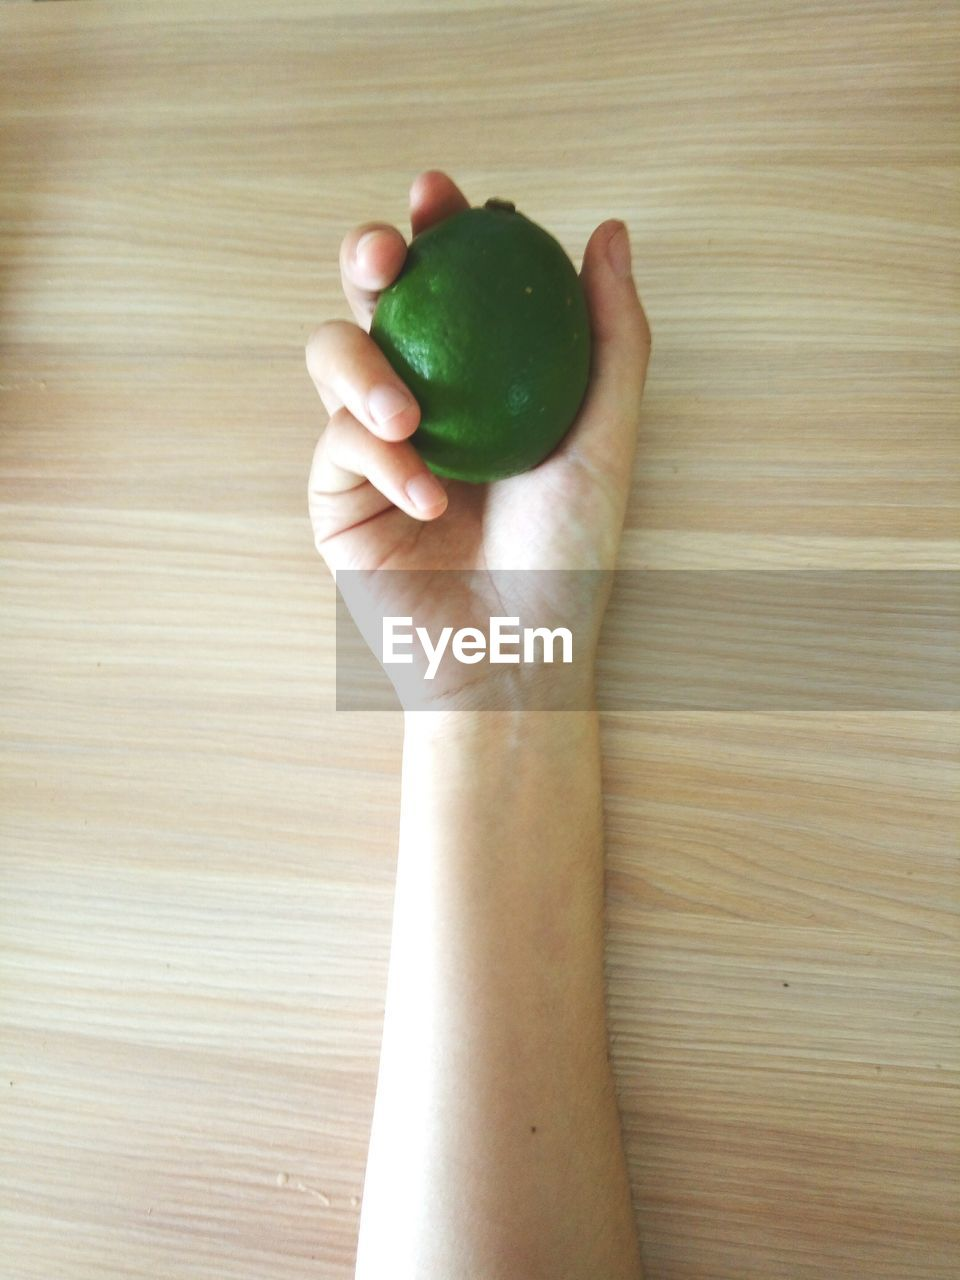 Cropped Image Of Hand Holding Lemon On Wooden Table